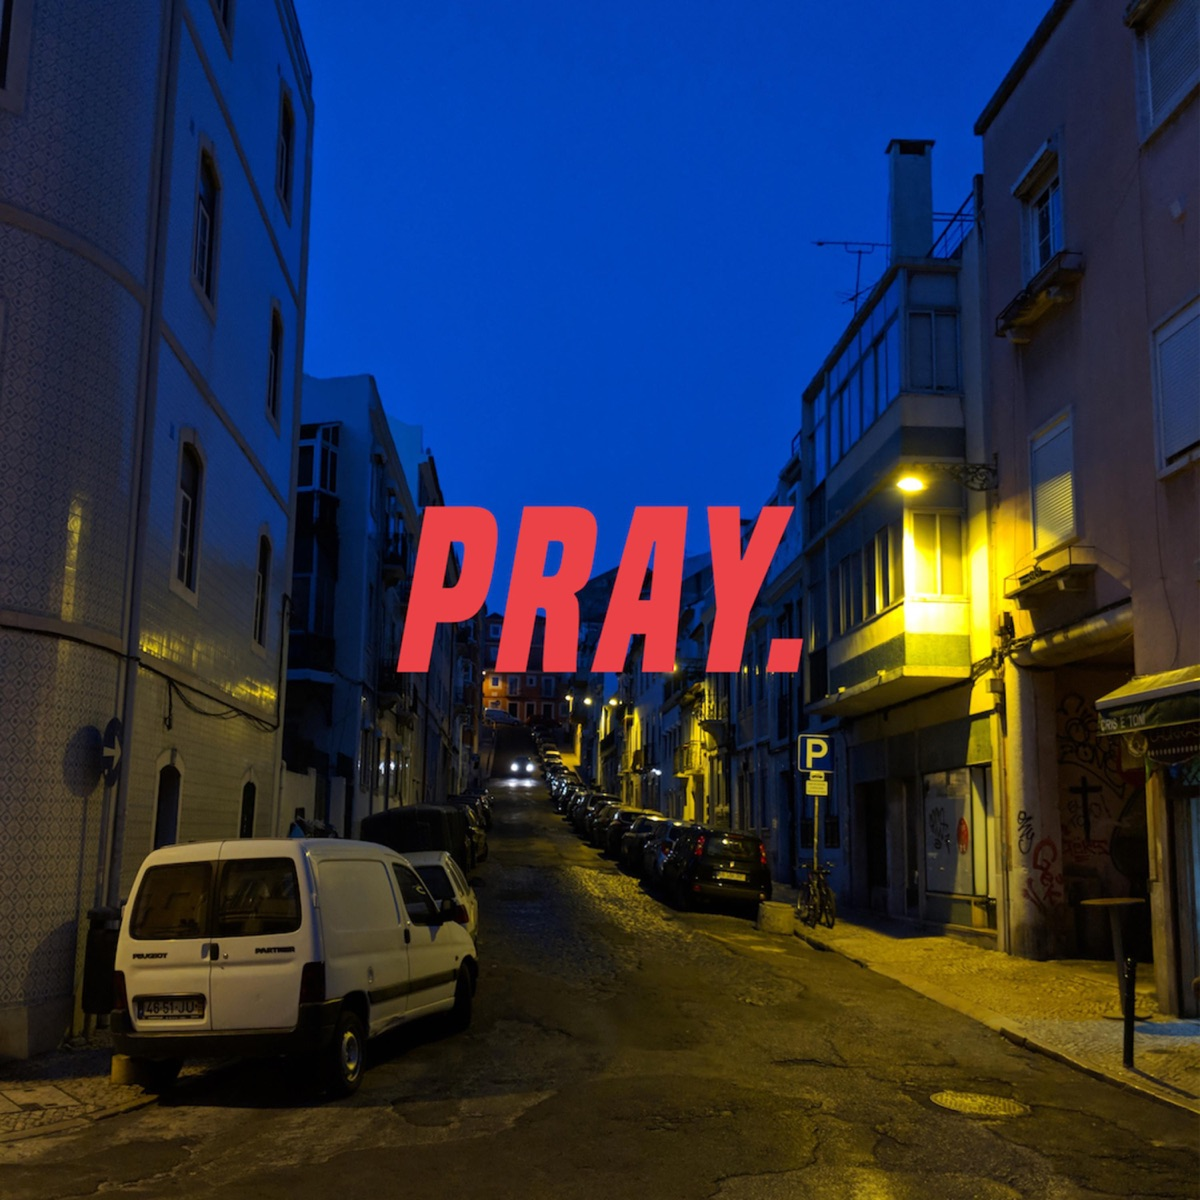 Pray (feat. Noble) - Single